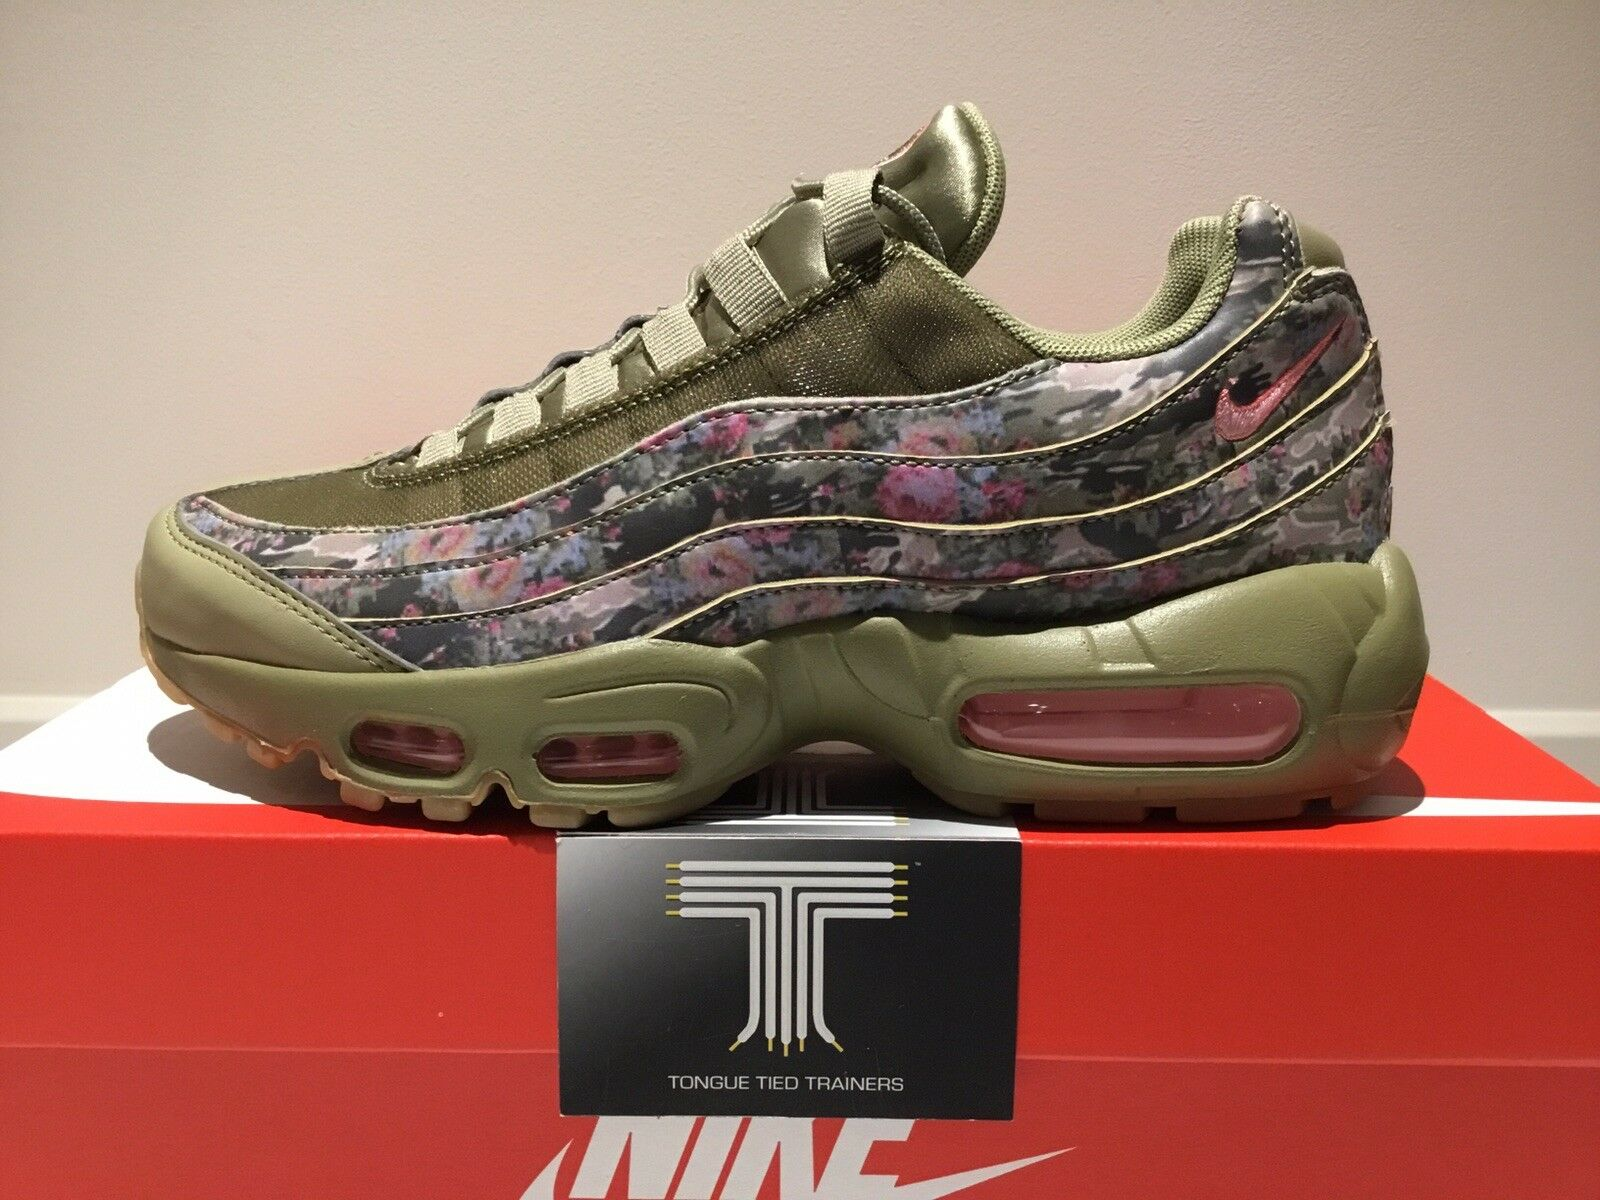 Nike Air Max 95  AQ6385 200  Uk Size 5  Euro 38.5